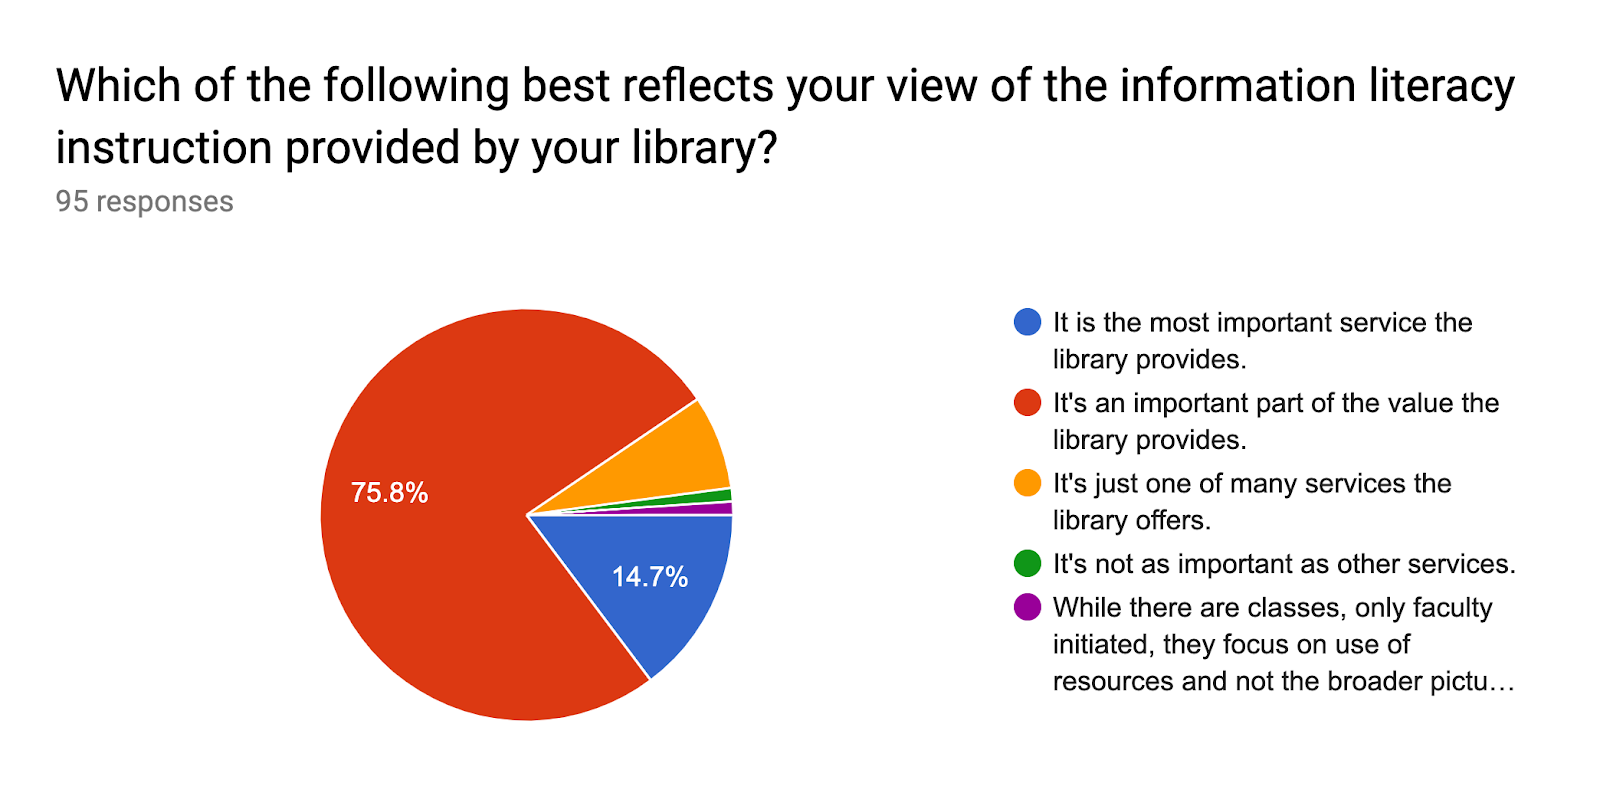 Forms response chart. Question title: Which of the following best reflects your view of the information literacy instruction provided by your library?. Number of responses: 95 responses.